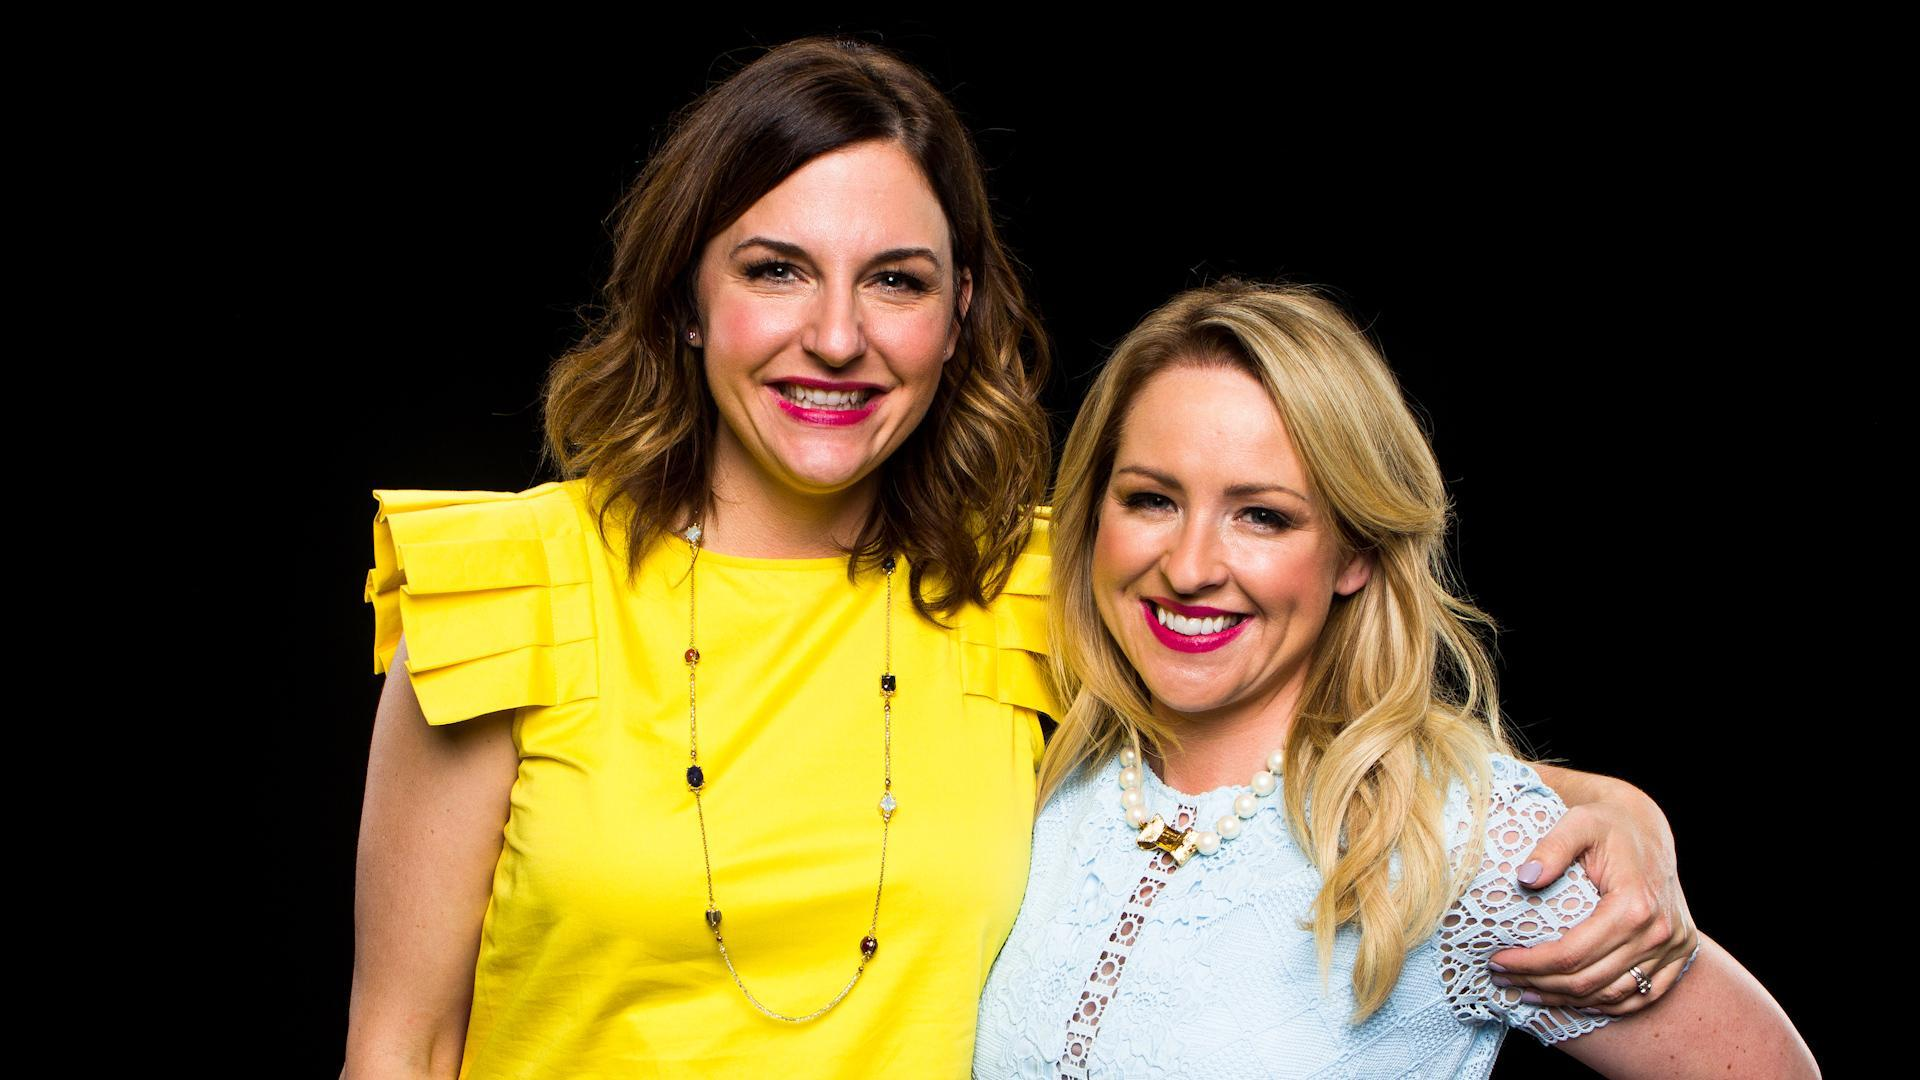 Kristin Hensley & Jen Smedley Chat About Their Summer Break Tour